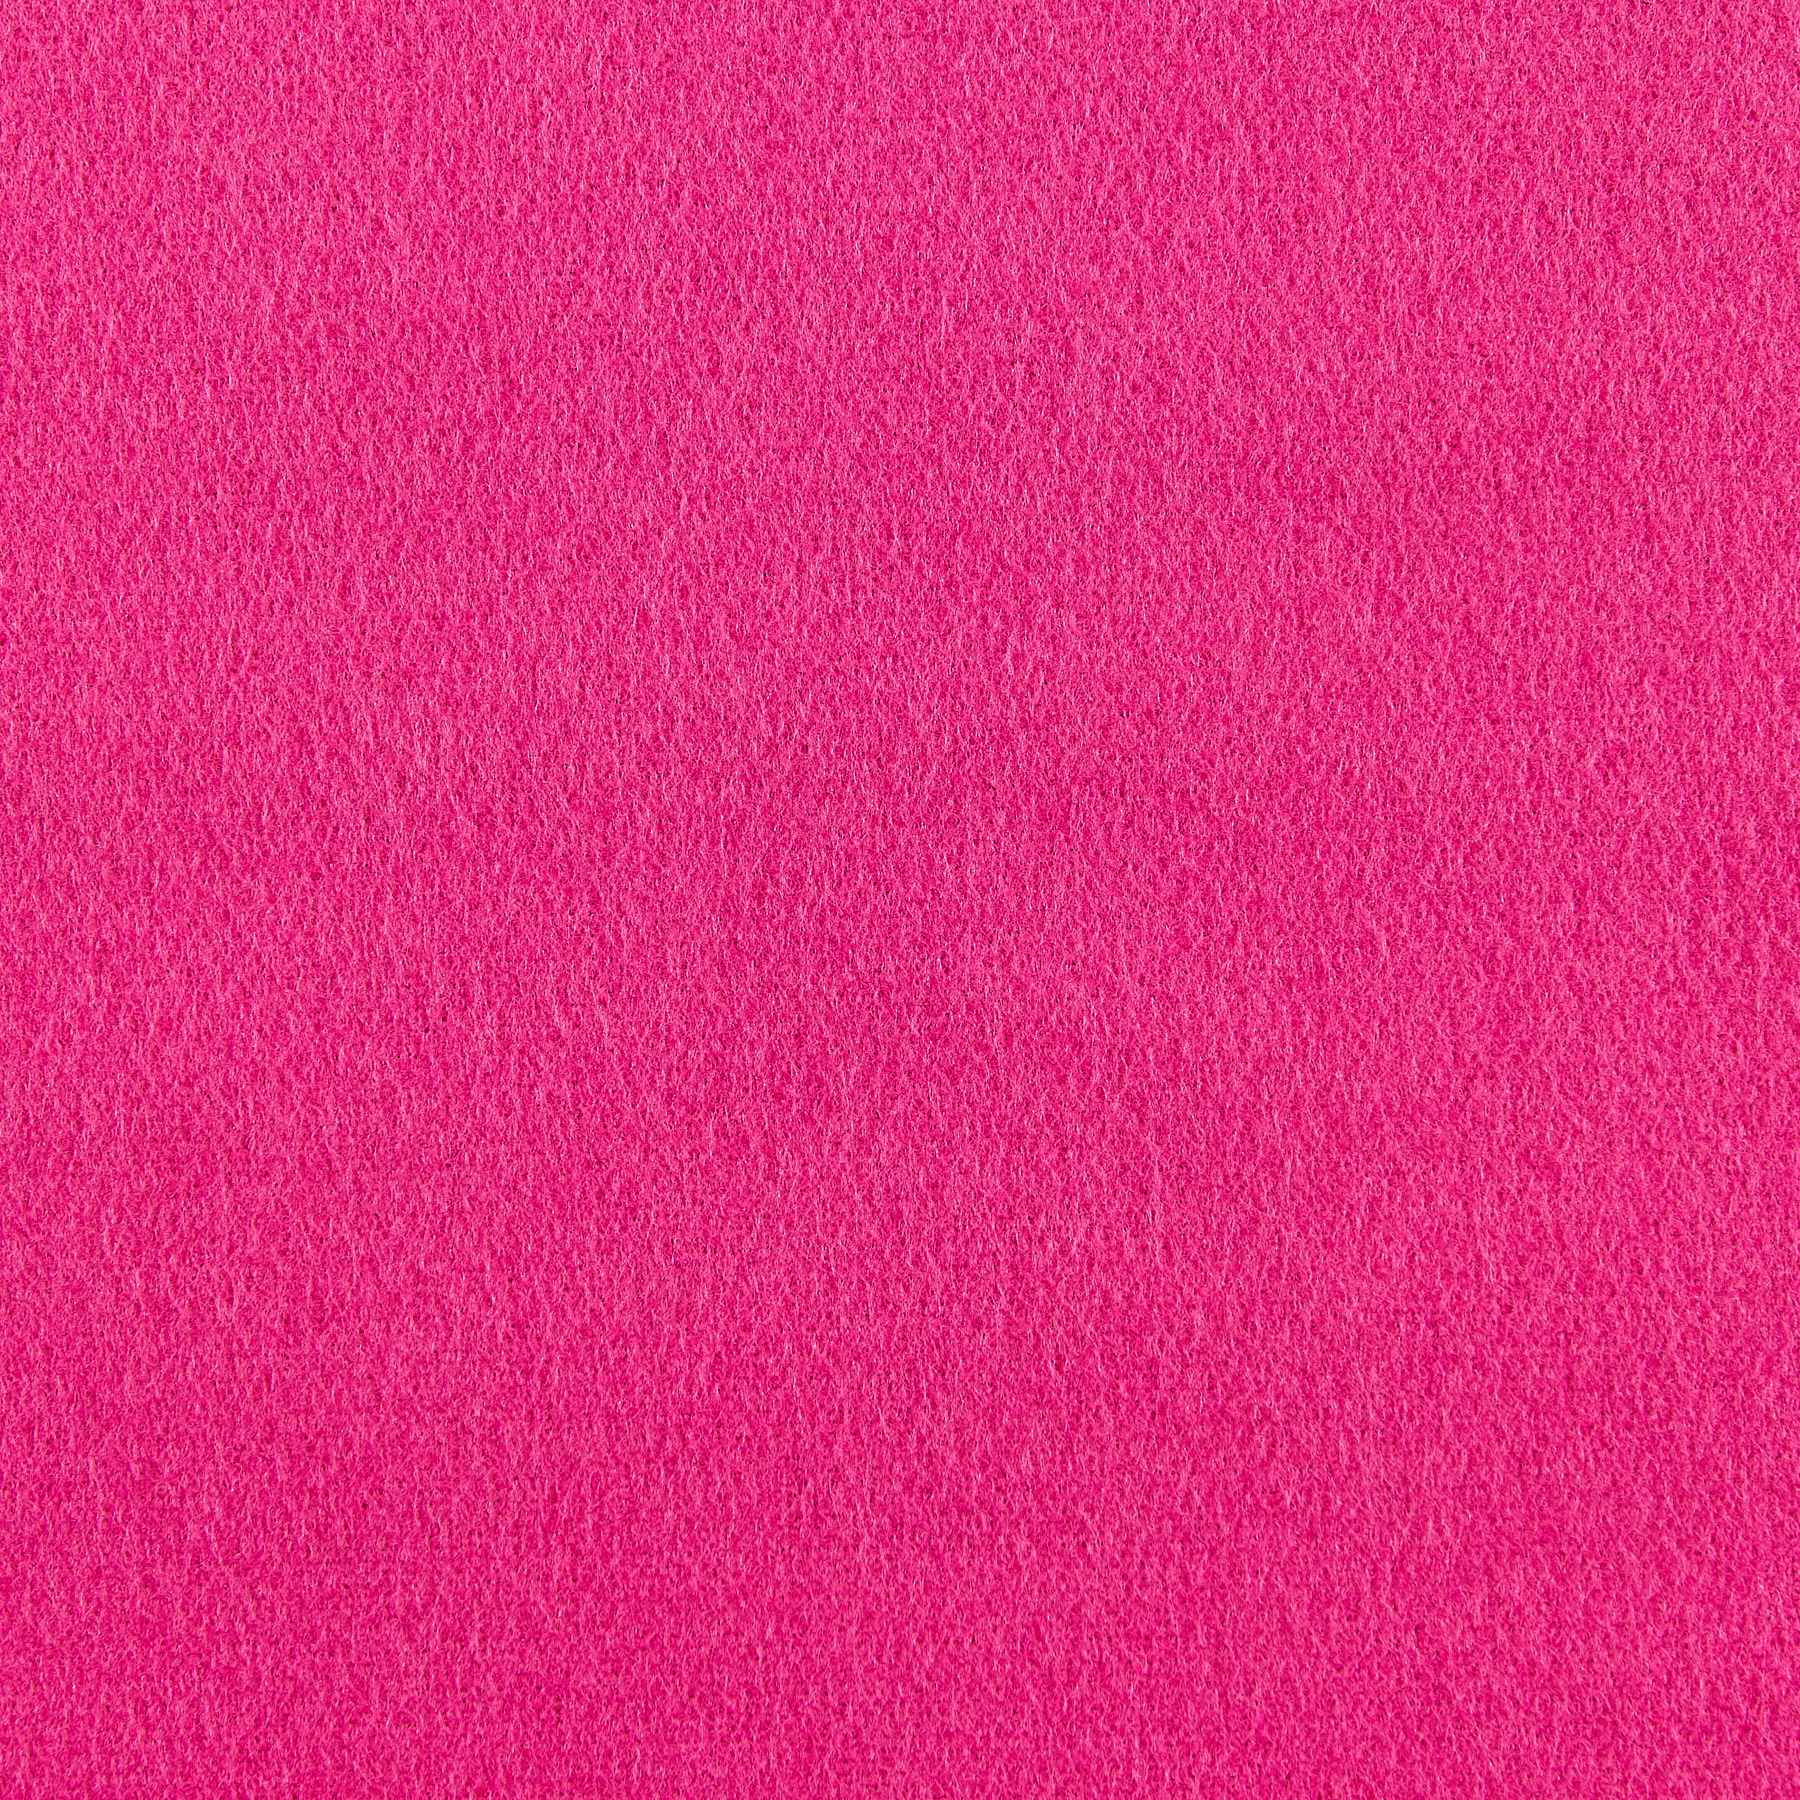 Kaufman Flannel Solid Hot Pink Fabric